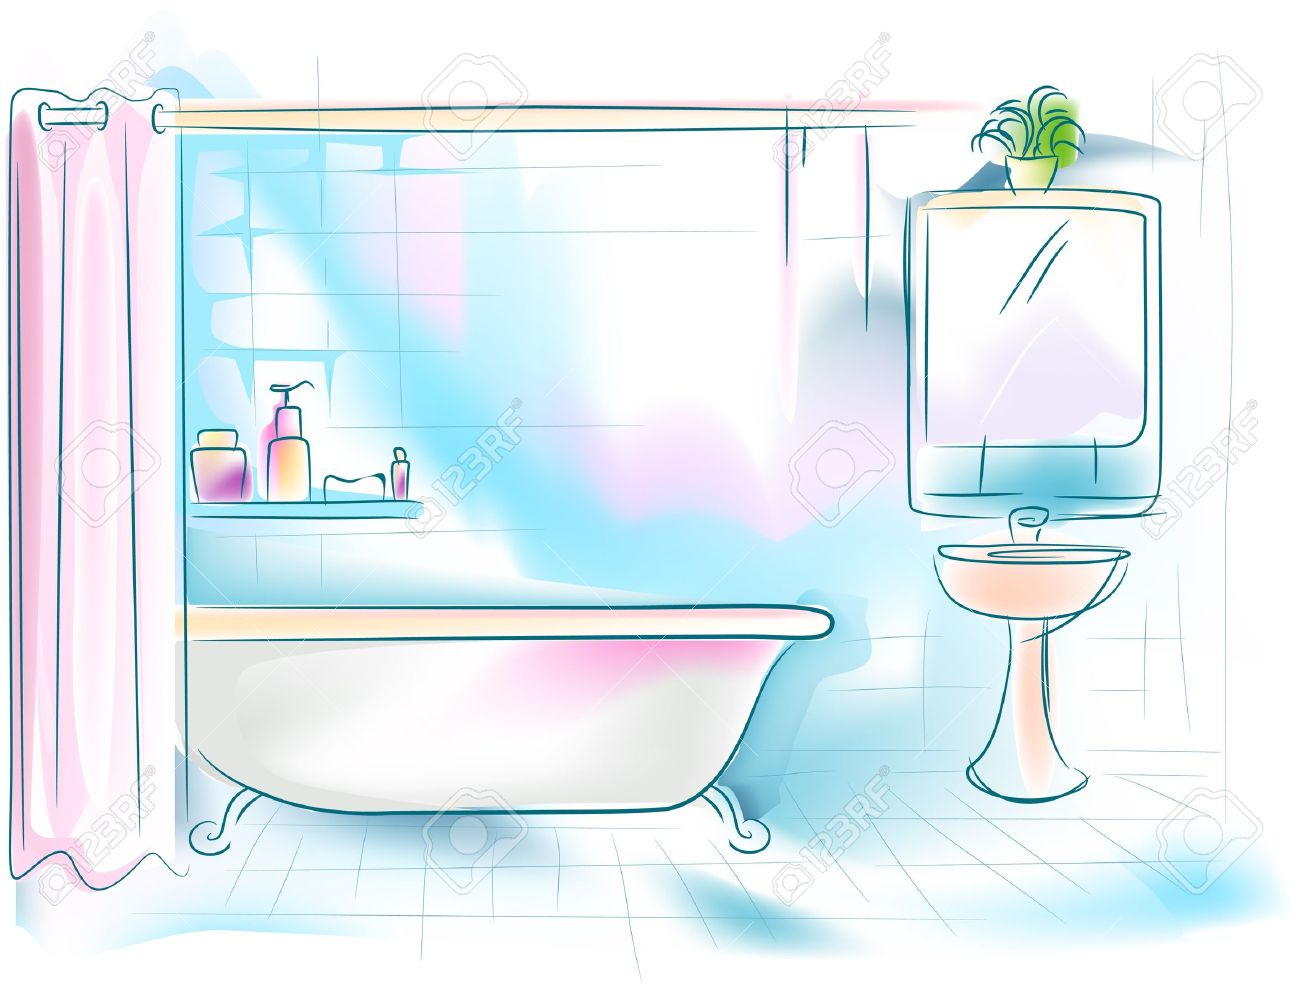 Dazzling clipart #3, Download drawings